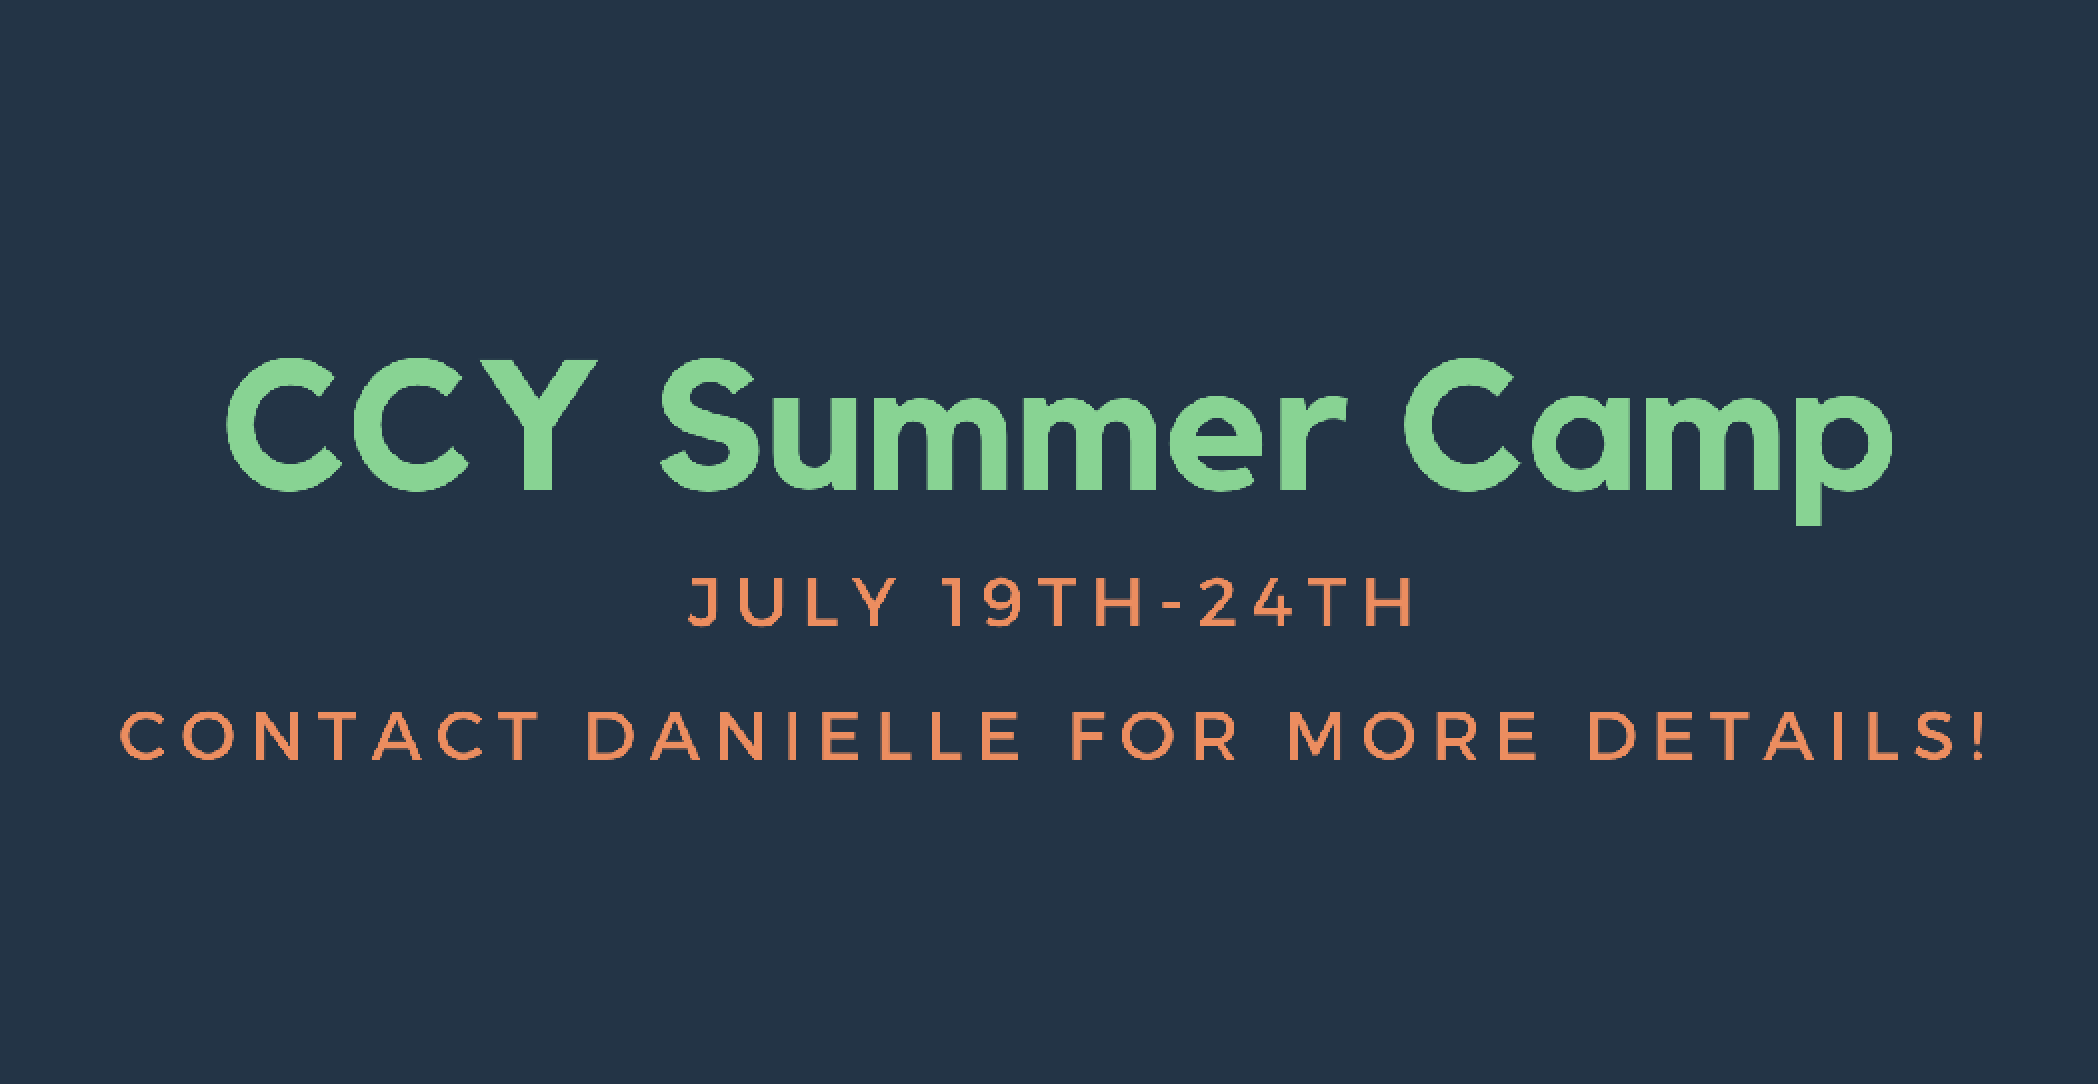 CCY Summer Camp